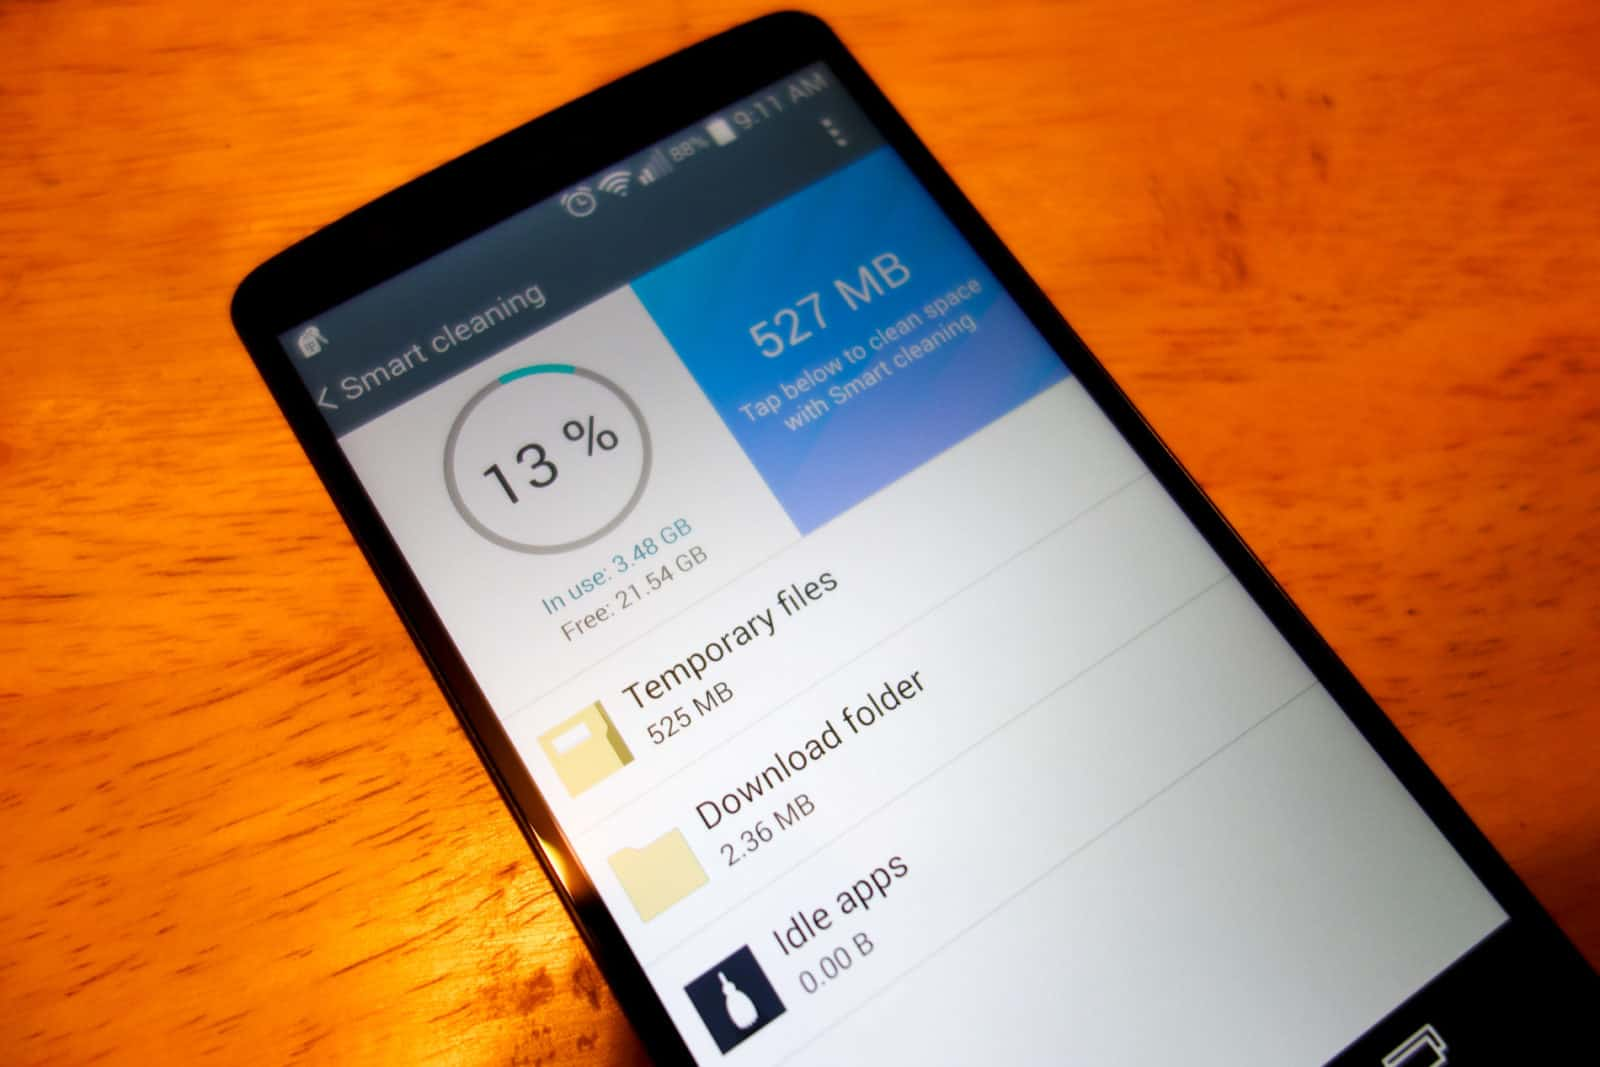 LG-G3-Smart-Cleaning-AH-1